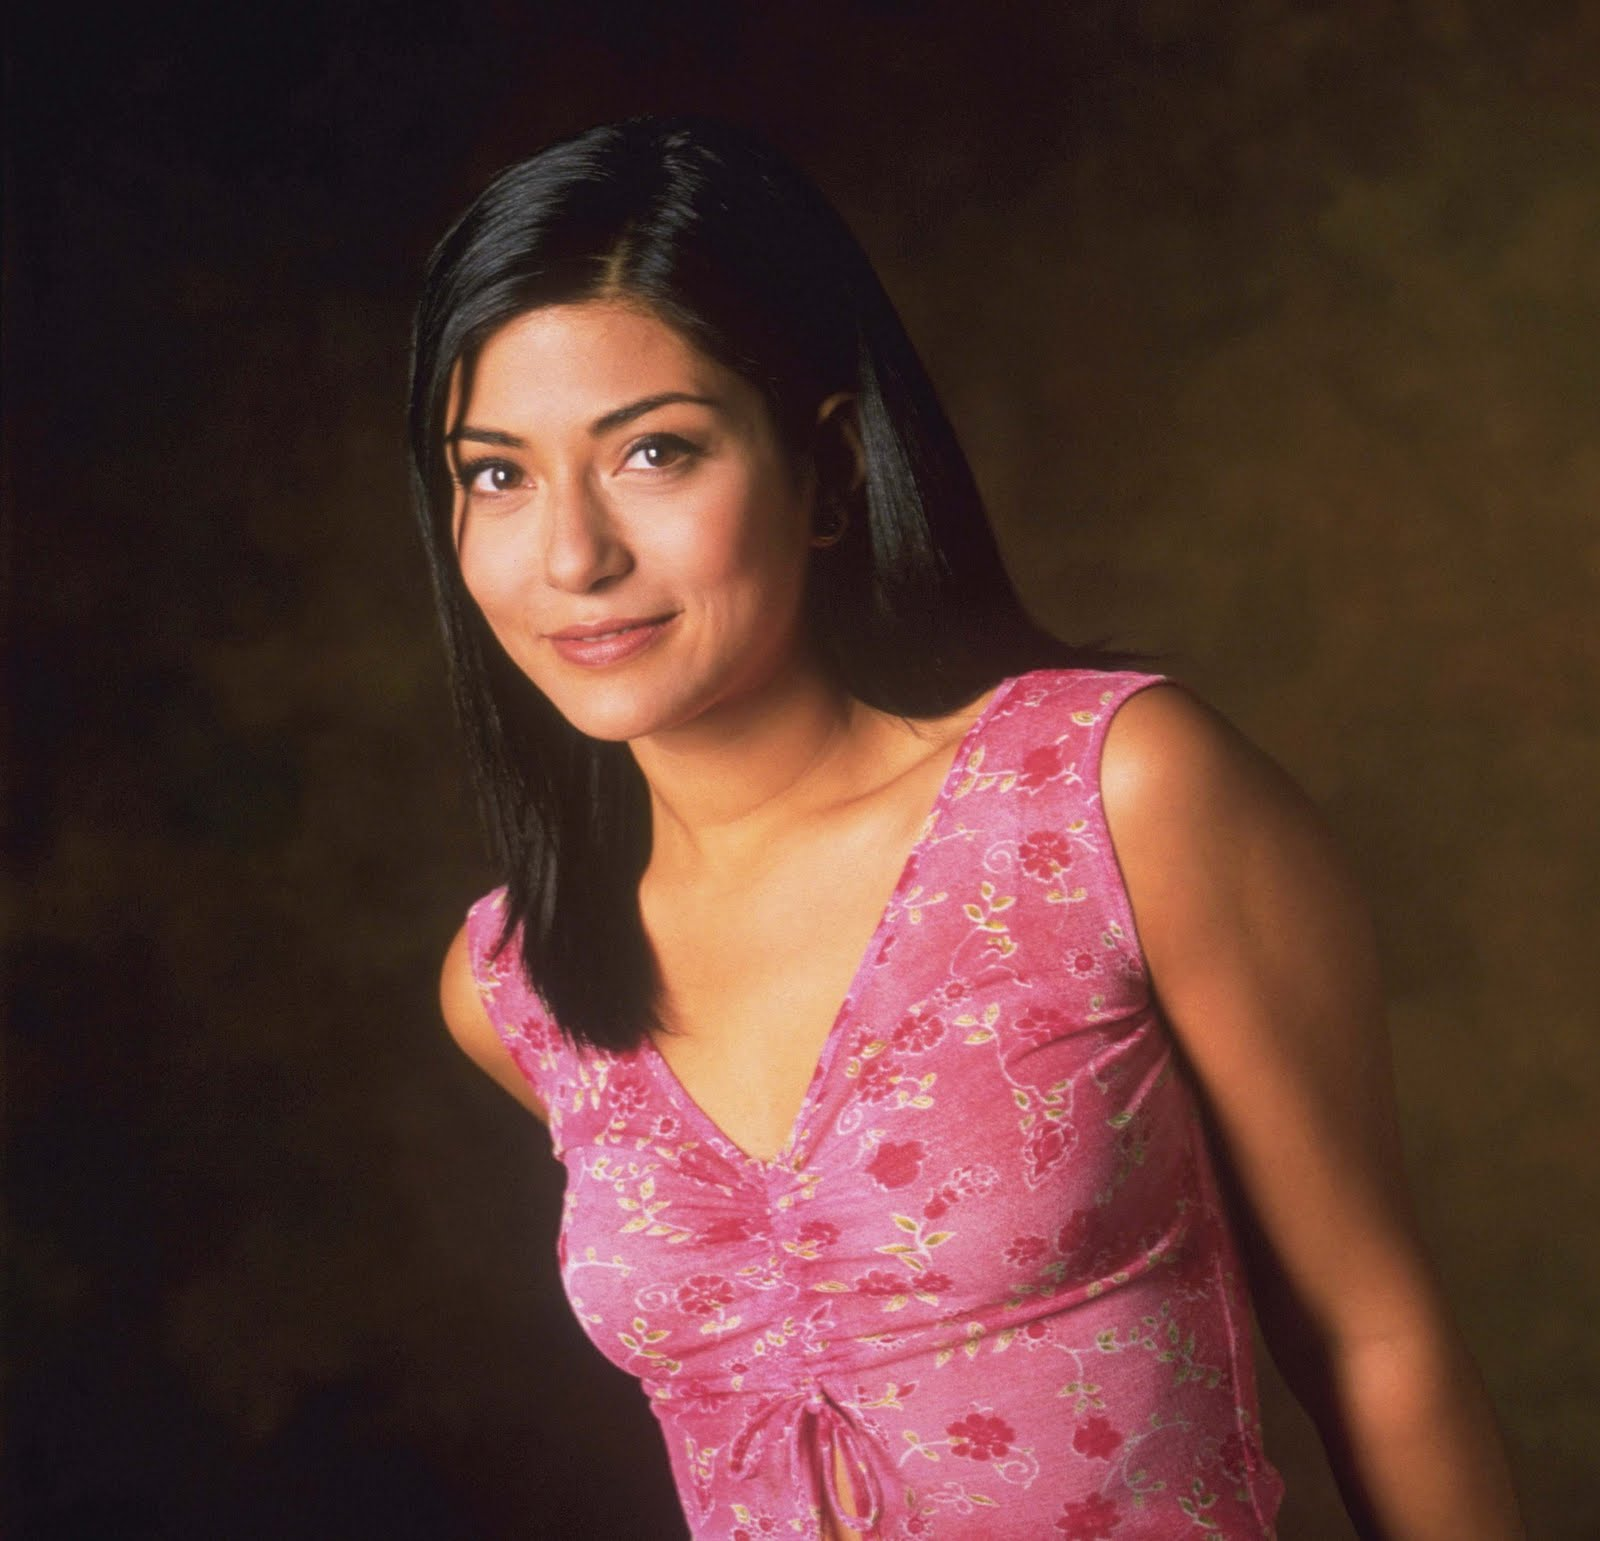 marisol nichols movies and tv shows